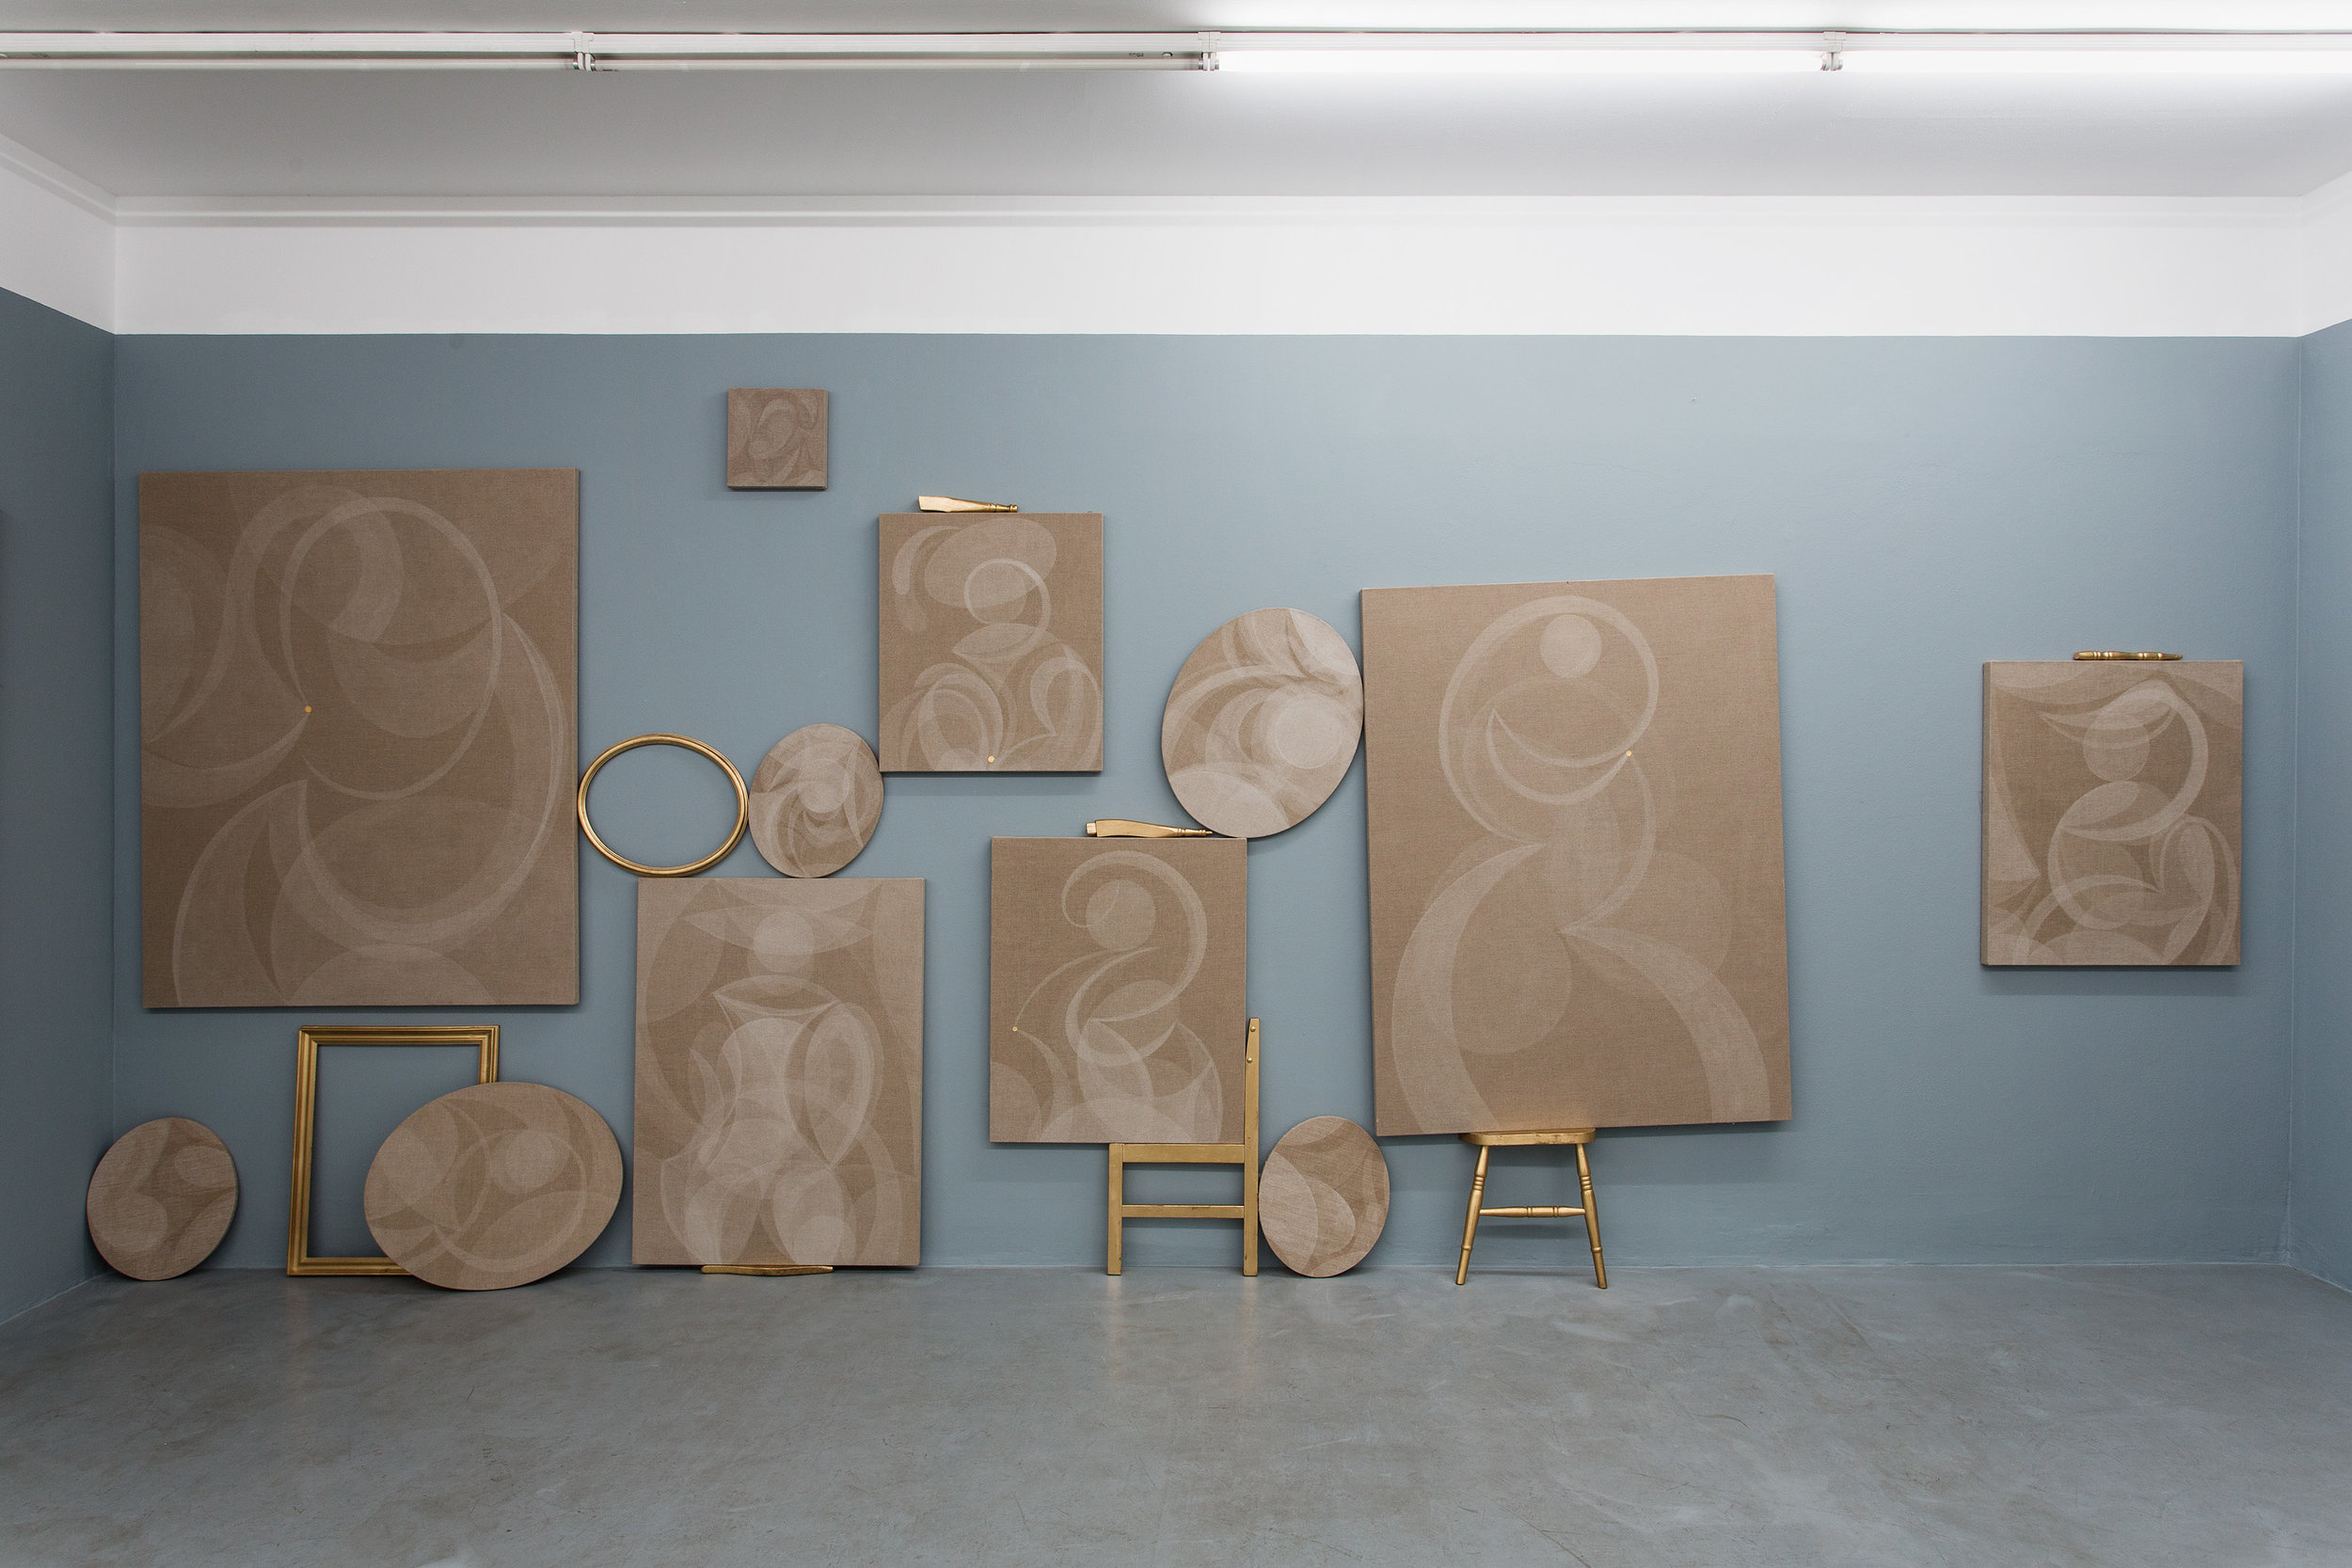 Exhibition View, Galerie Knoll, curated by_Lina Dzuverovic, 2013, Photo: Galerie Knoll